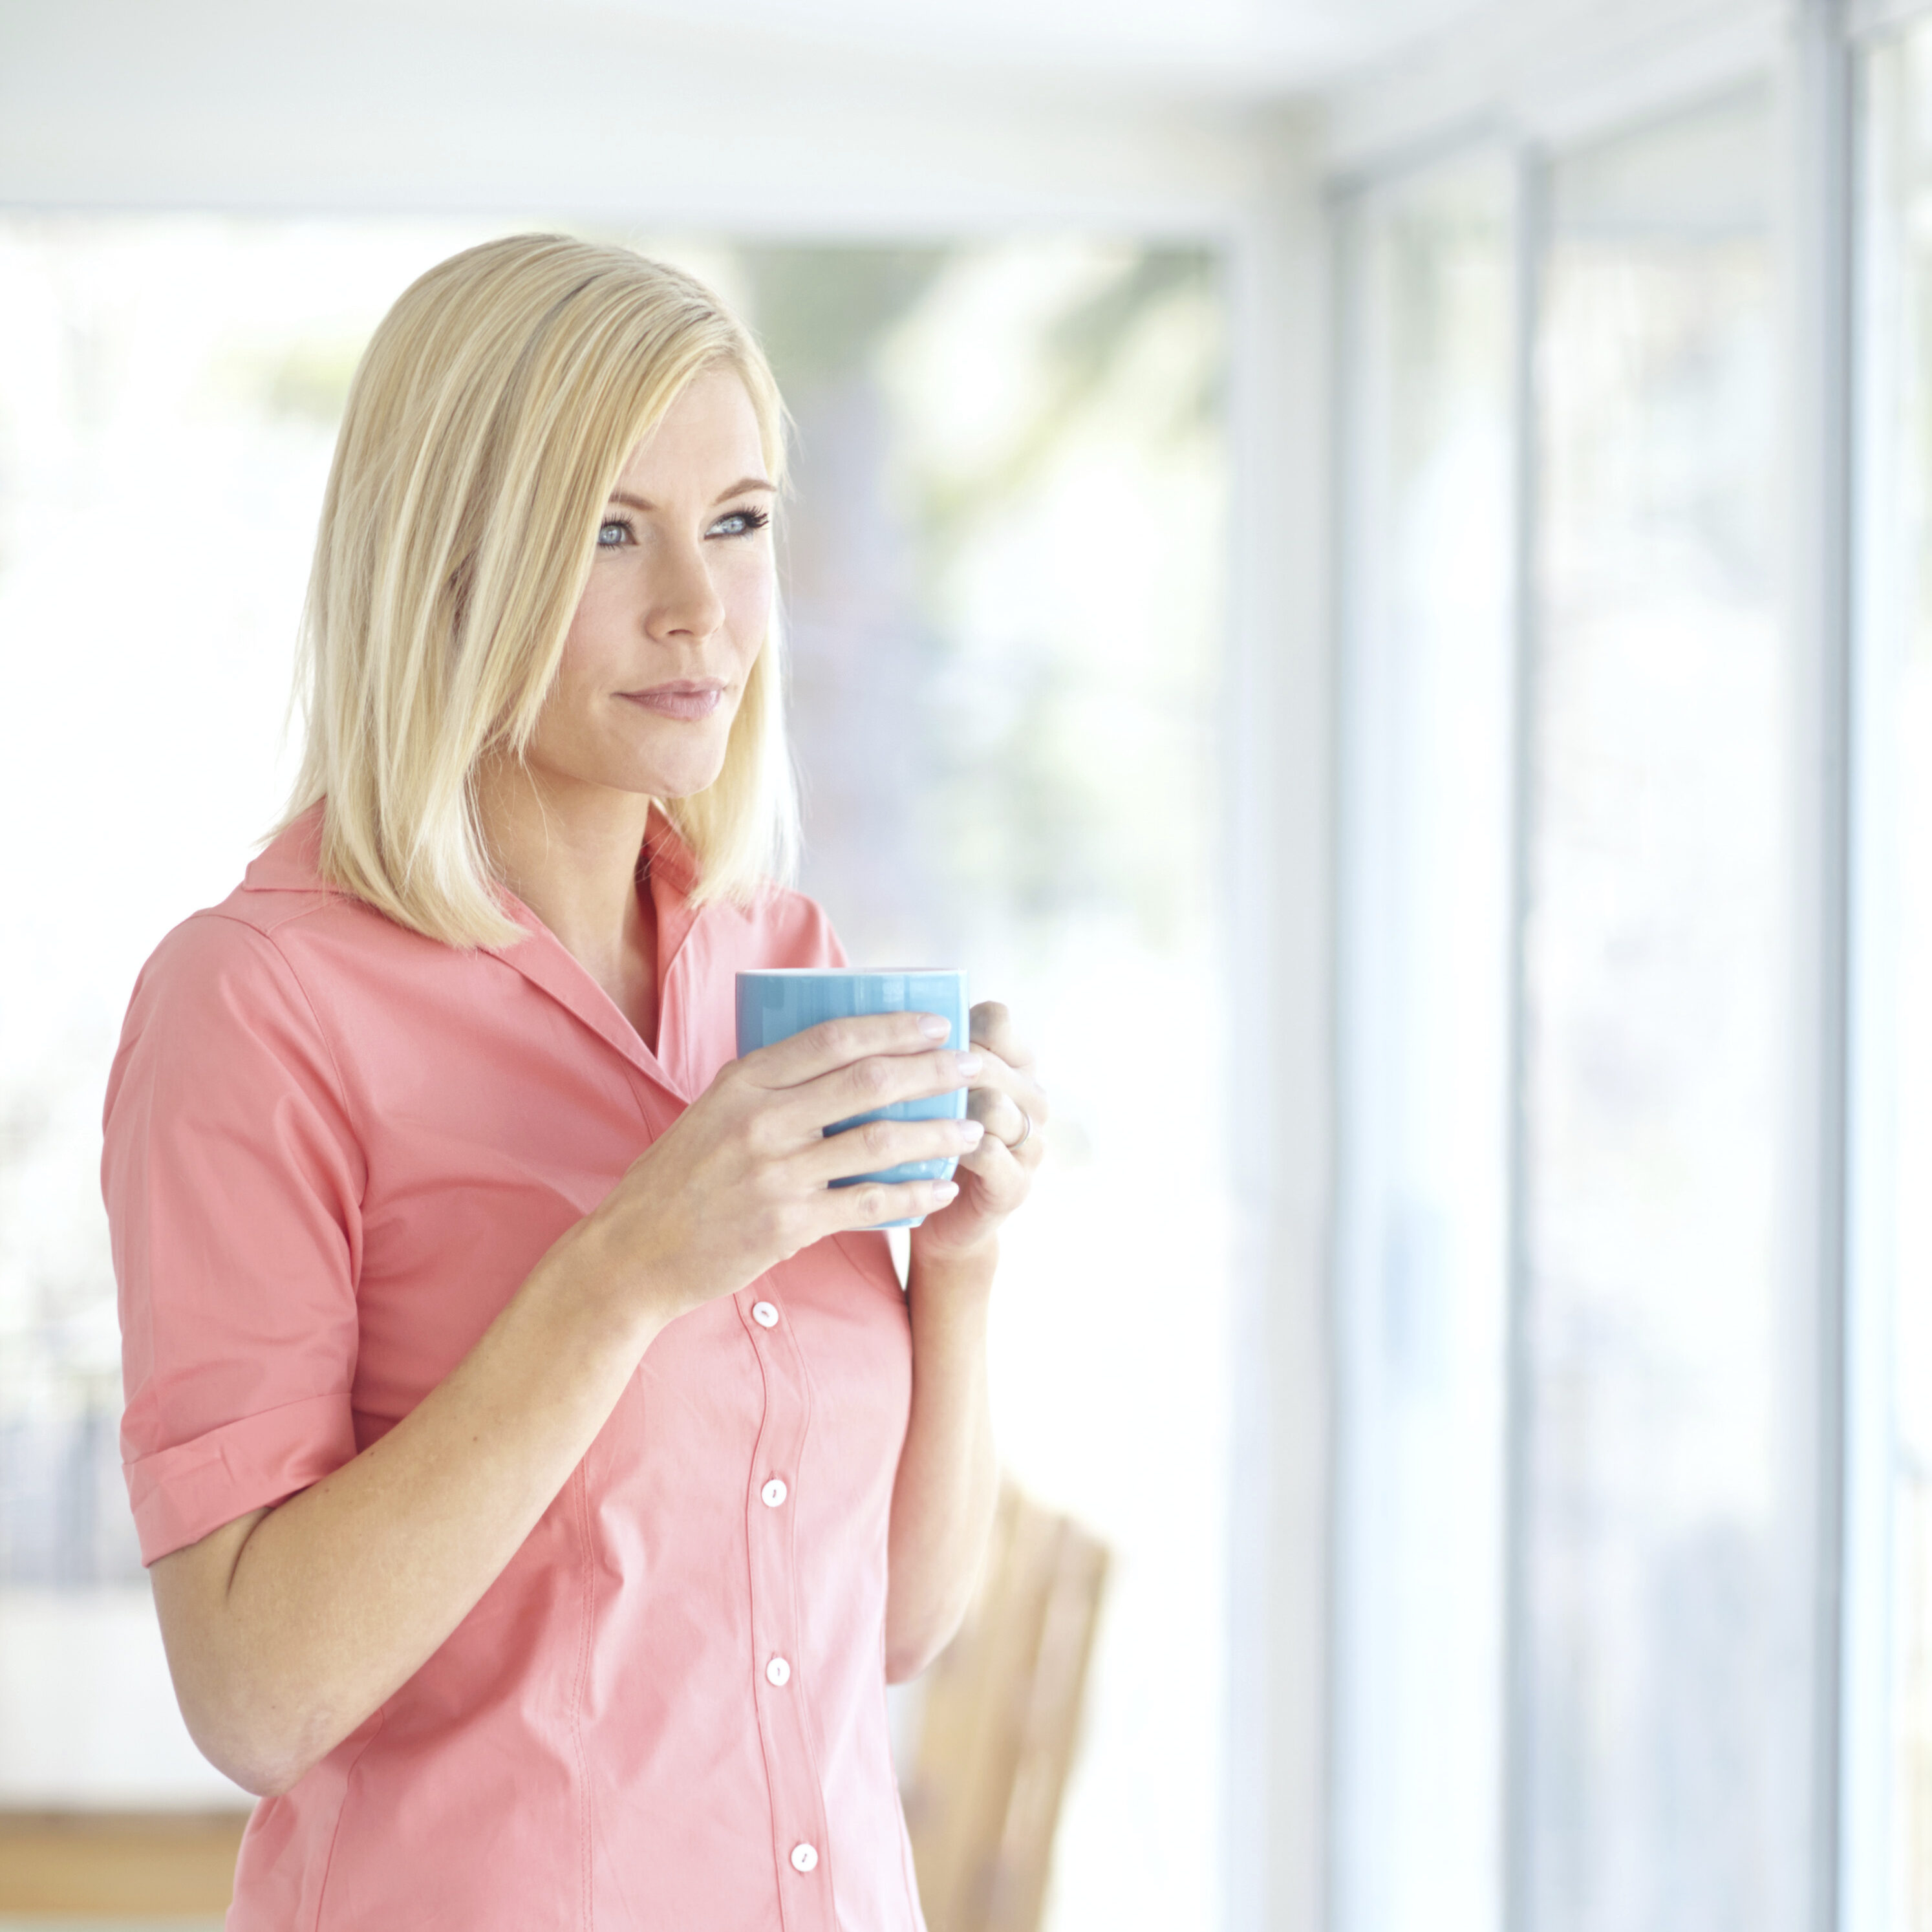 Thoughtful young blonde woman relaxing at home with a cup of coffee